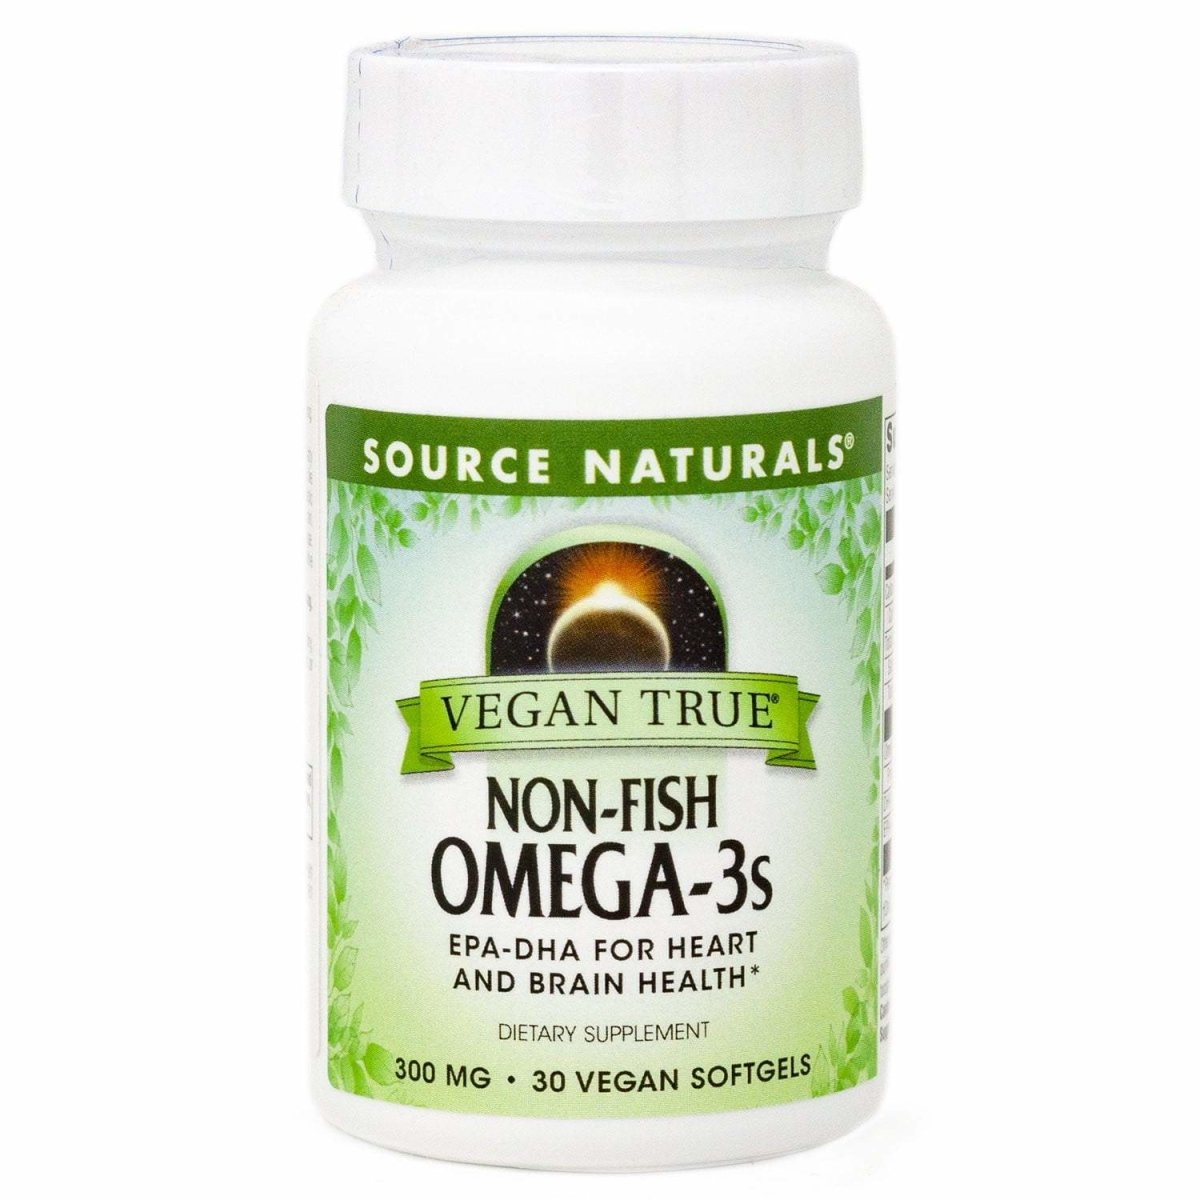 Source Naturals Vegan True Non-Fish Omega-3s EPA-DHA, for Heart and Brain Health